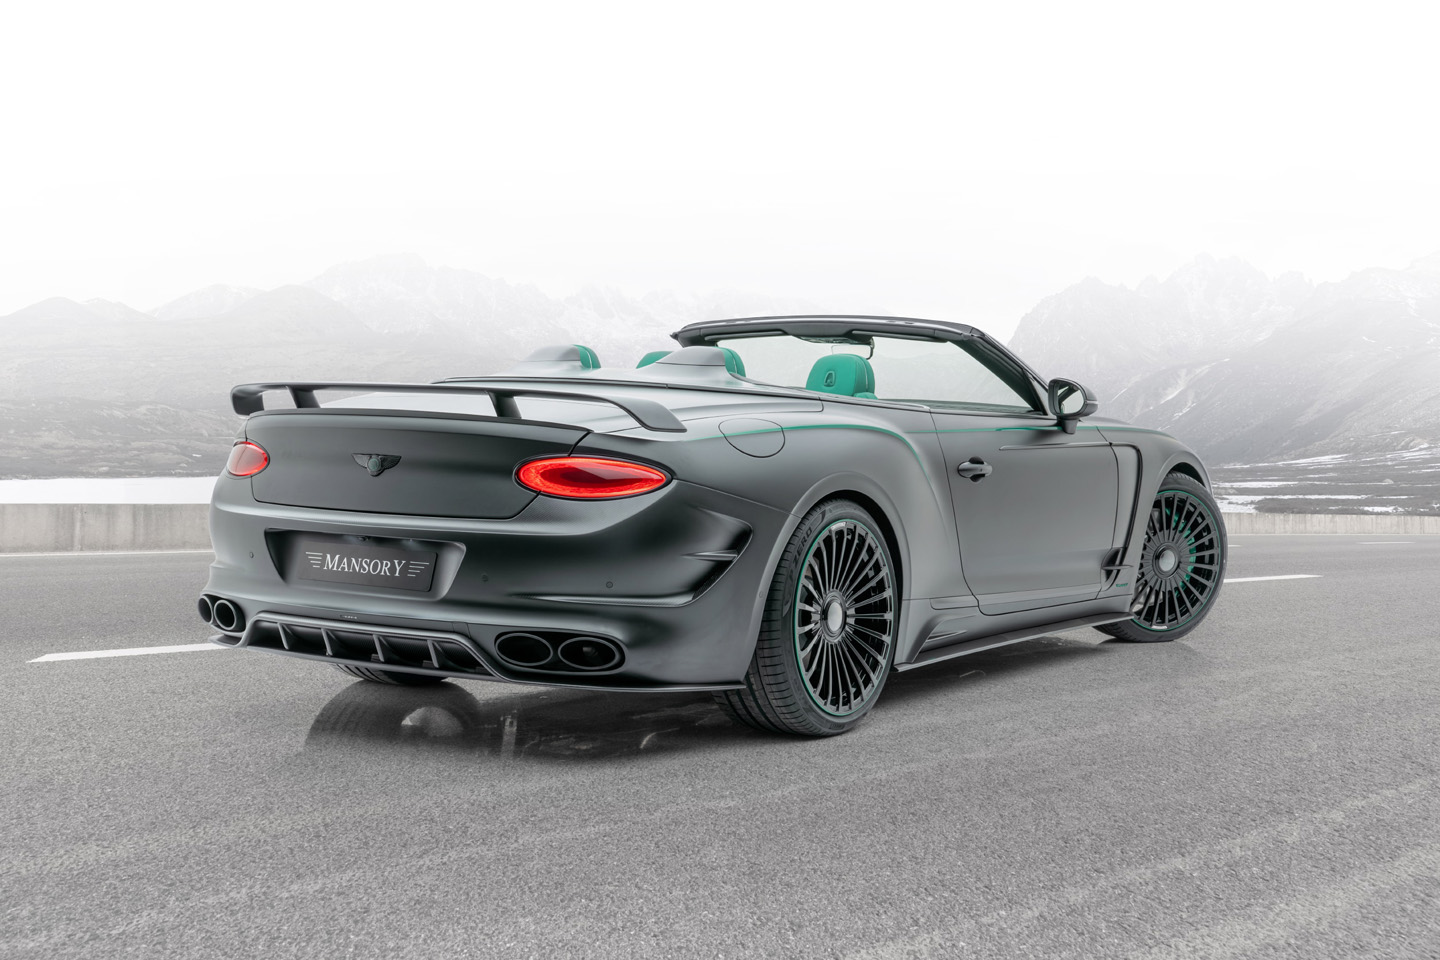 Mansory Bentley Continental GT V8 Convertible 2020 4